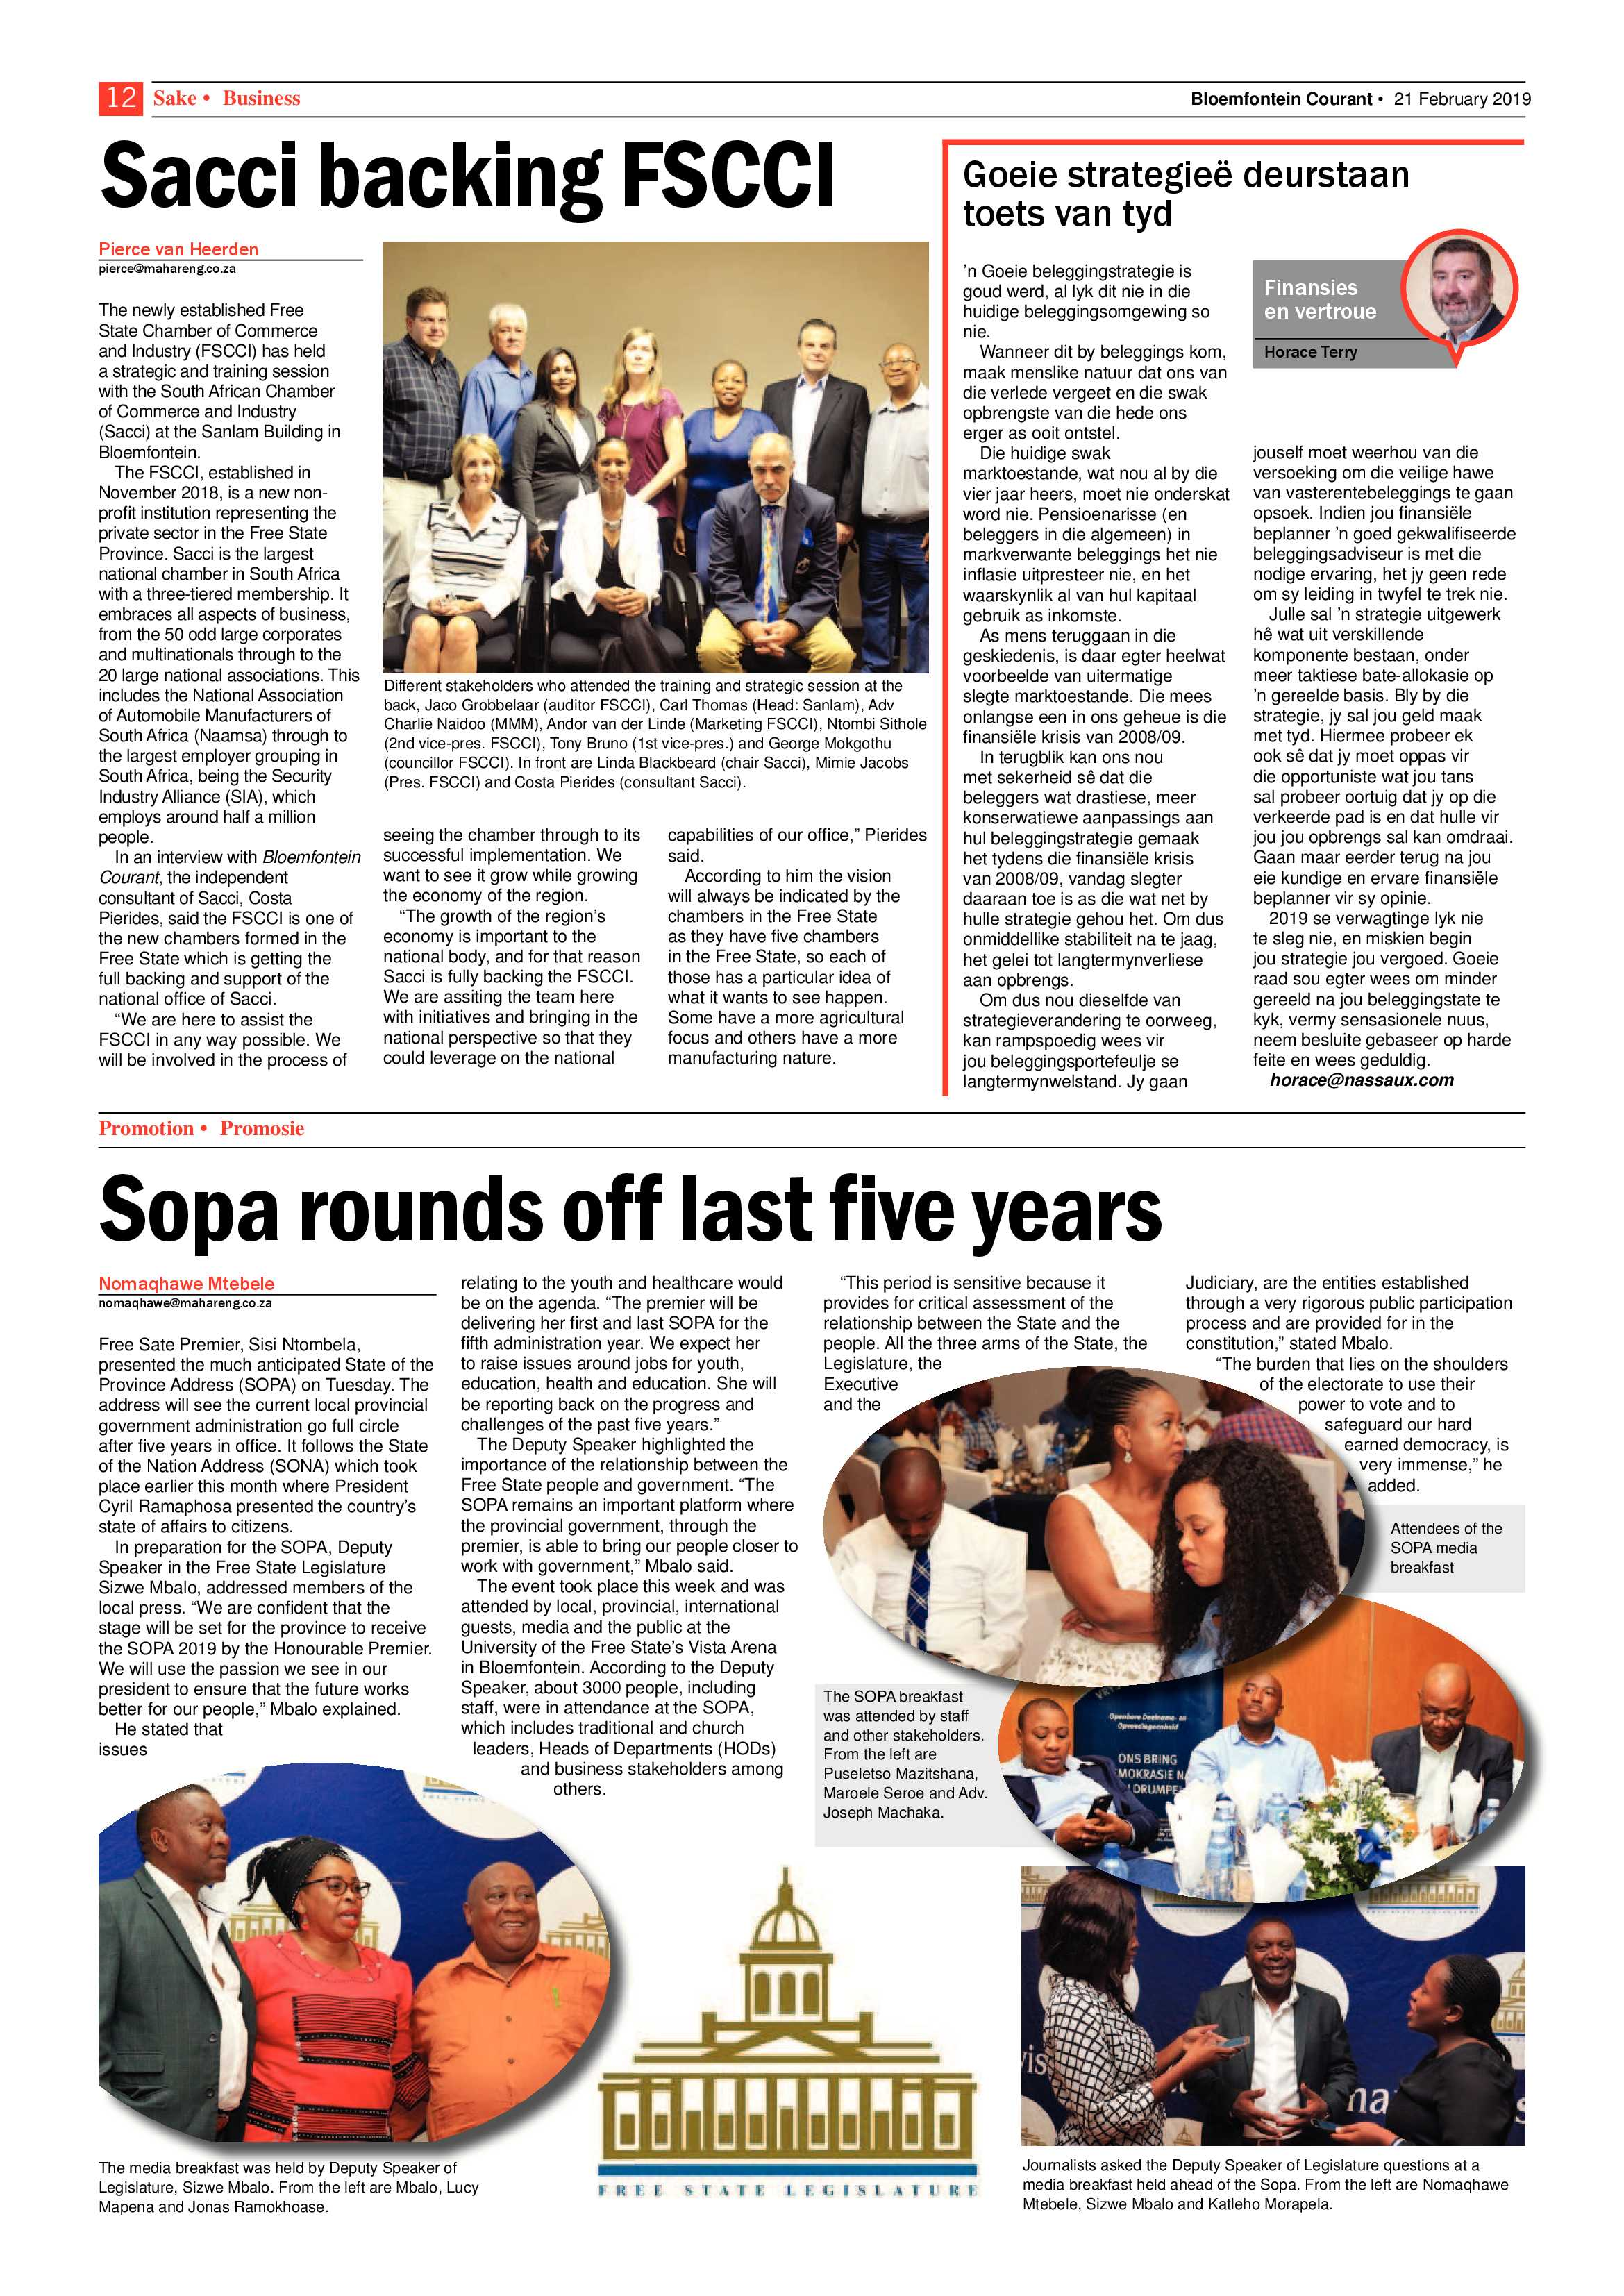 courant-21-february-2019-epapers-page-12